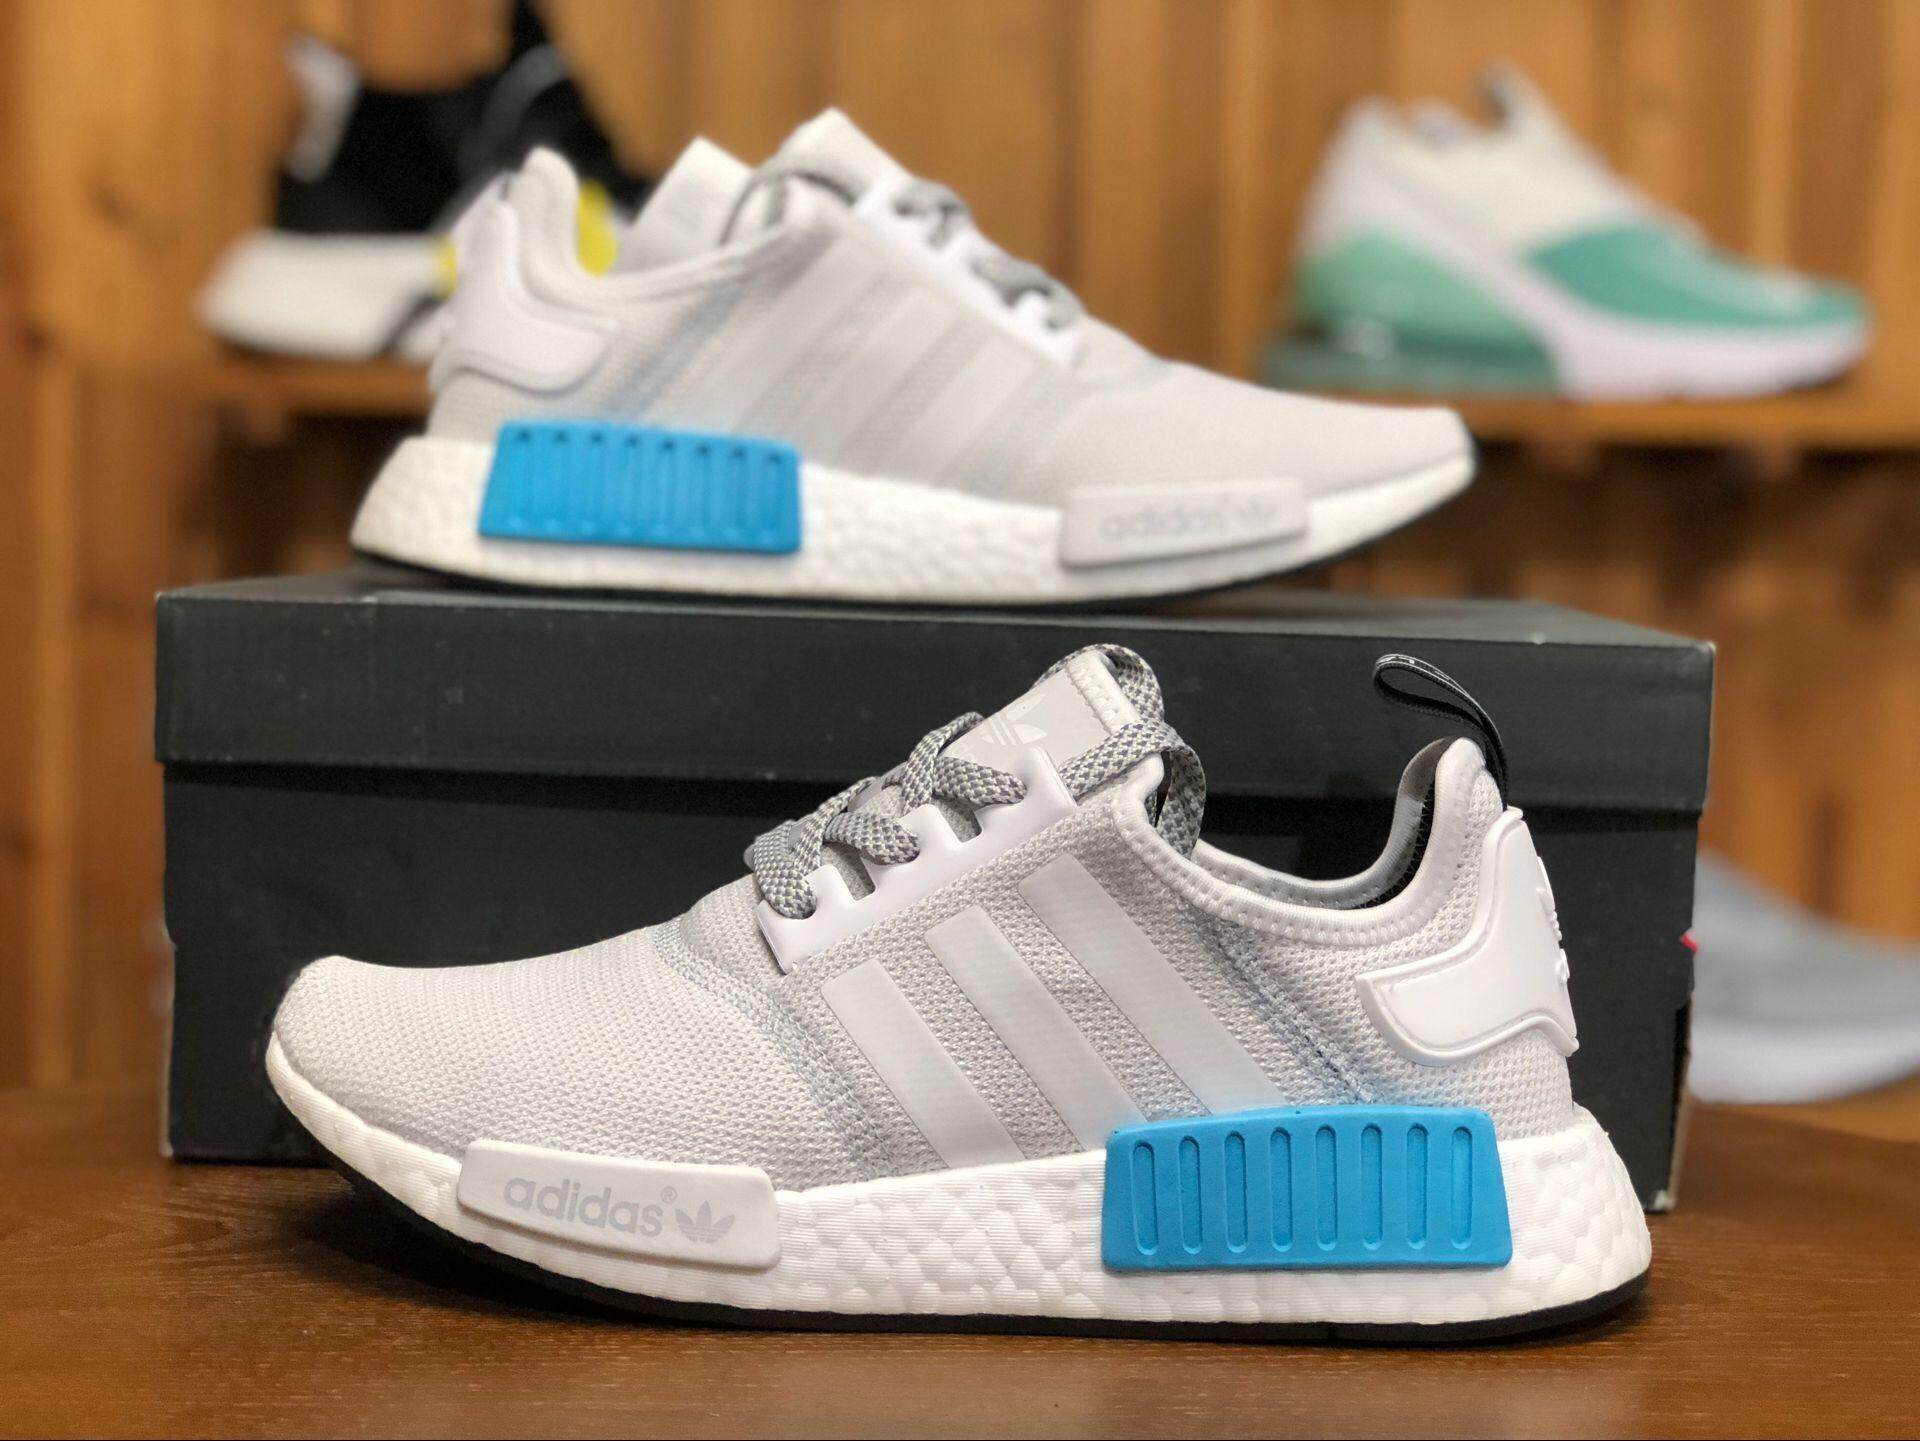 promo code 6c6a1 8f573 Sale ADIDA 2018 NMD  R1 Runner Nomad White Blue S31511 Women and Men  Sneaker 36-